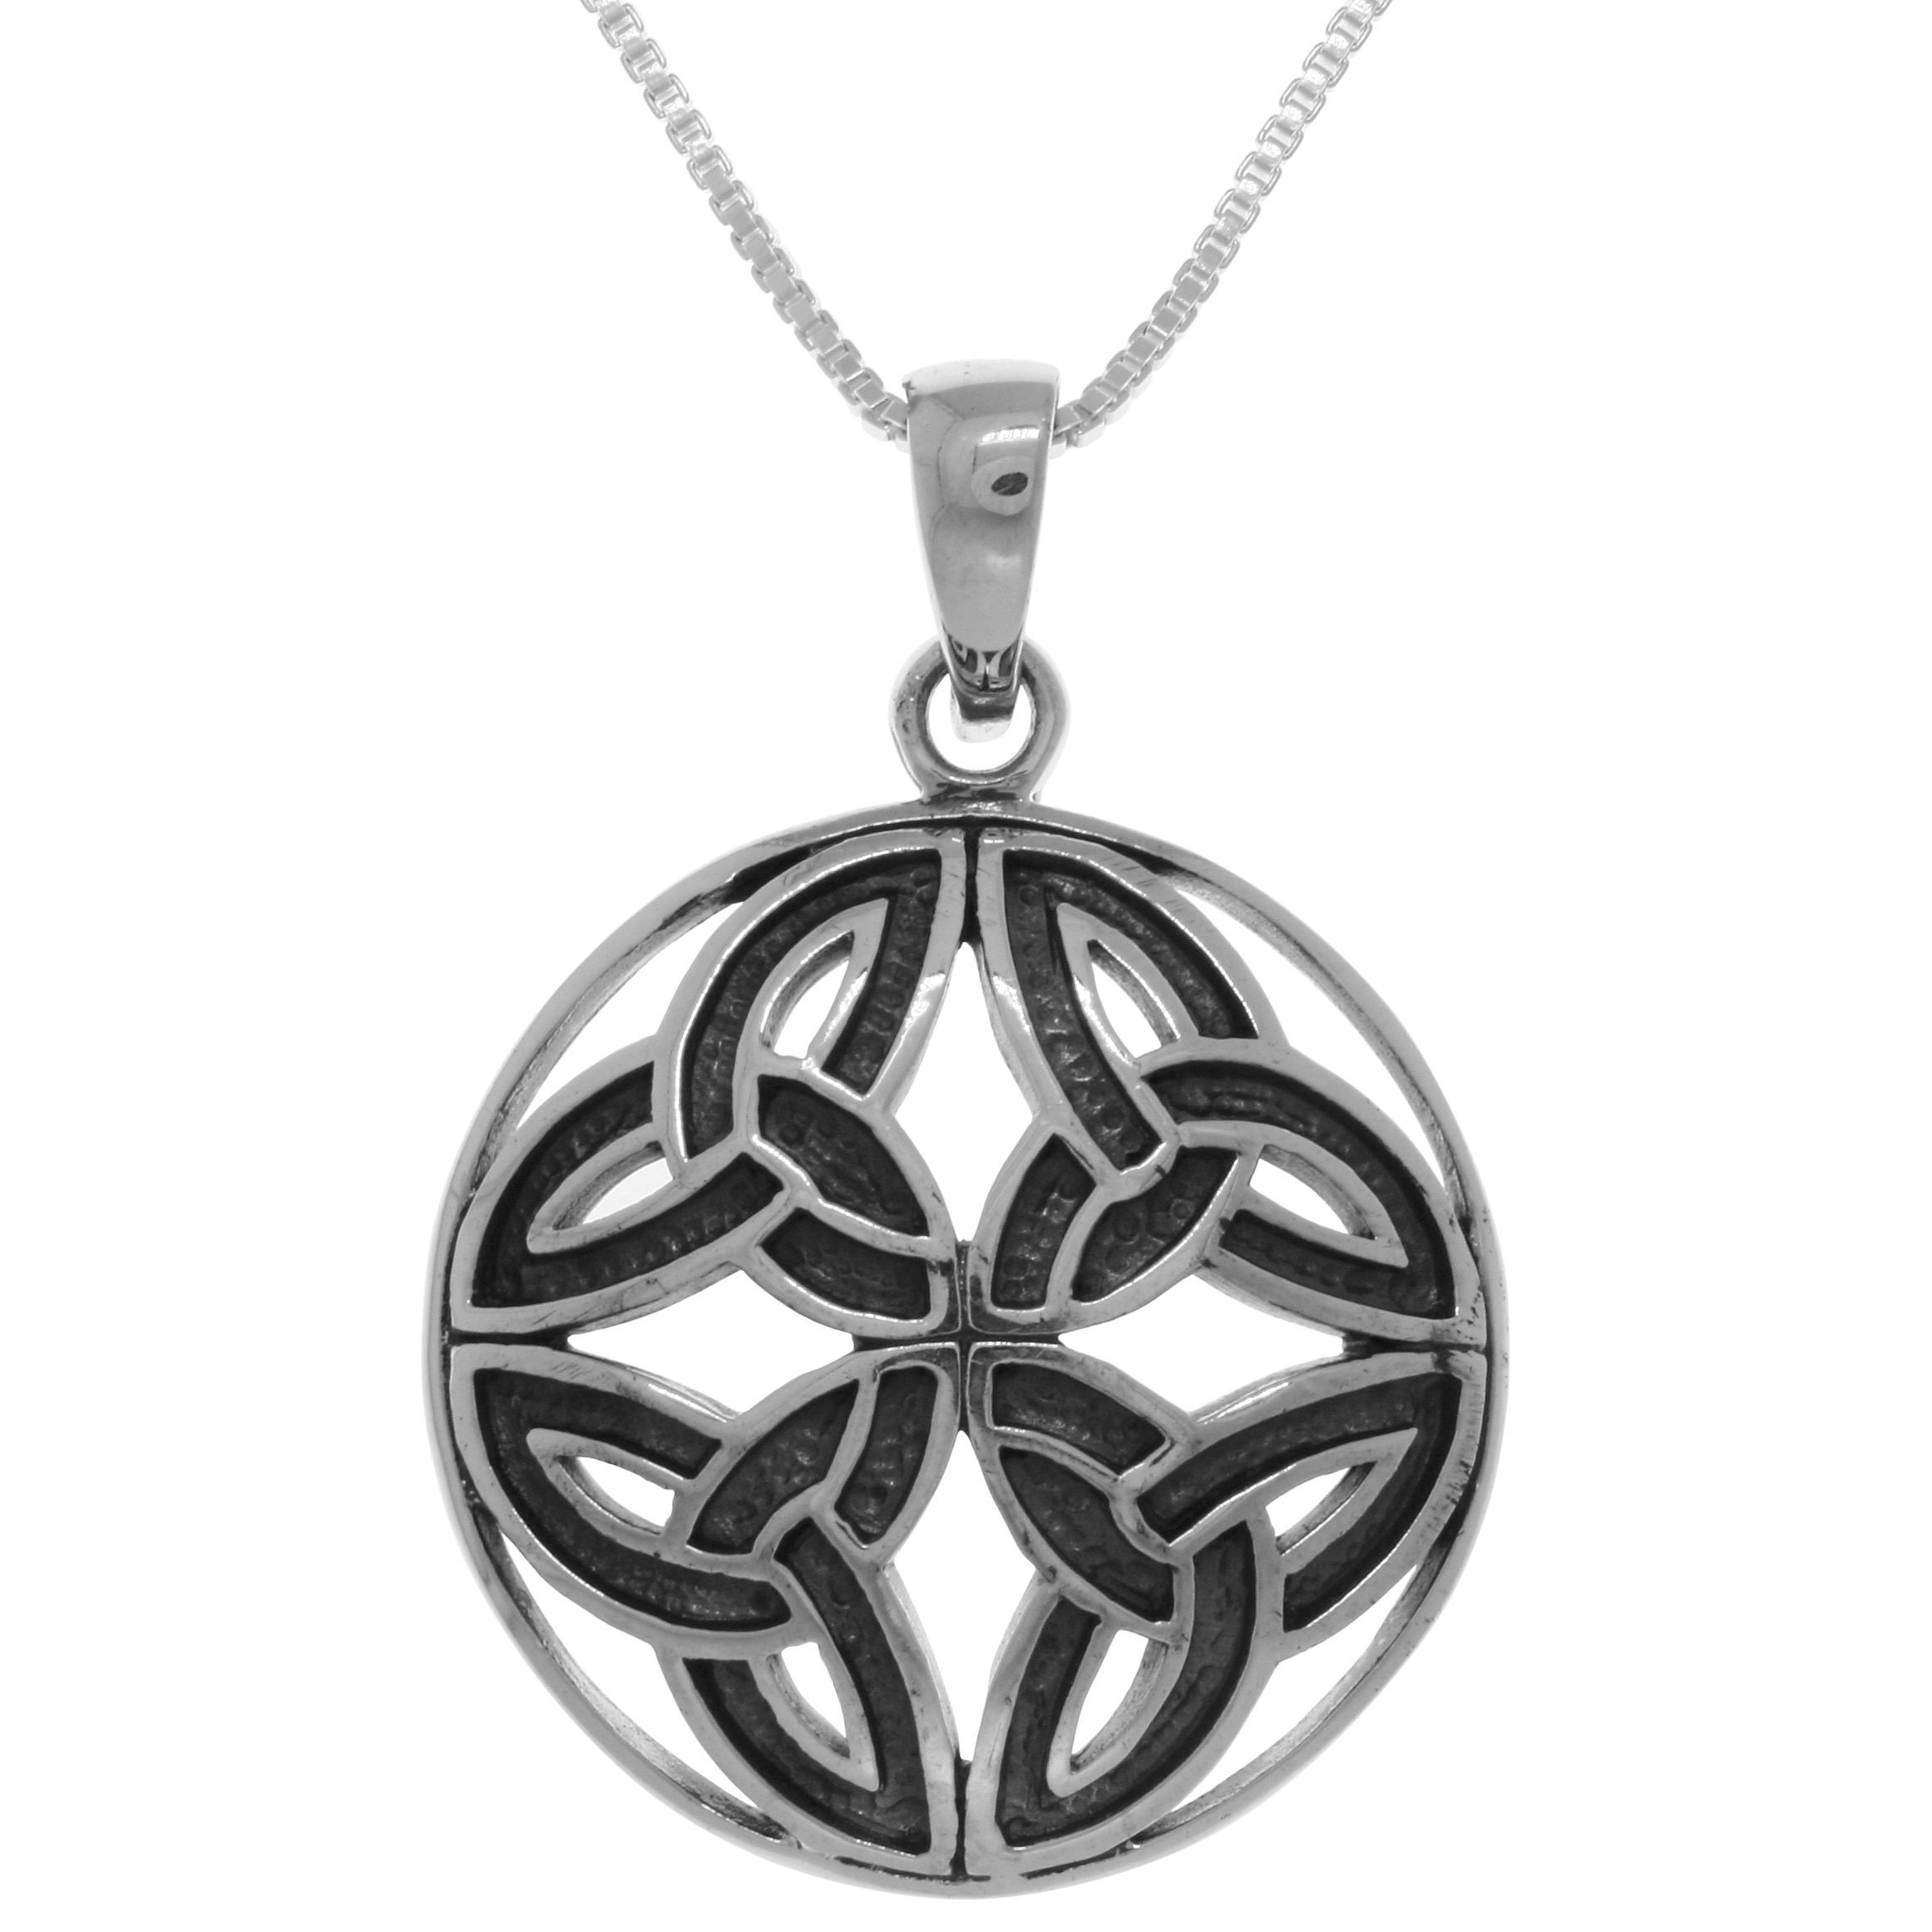 pewter celtic sun jewelry trilogy itm silver chain pendant black charm necklace jnt